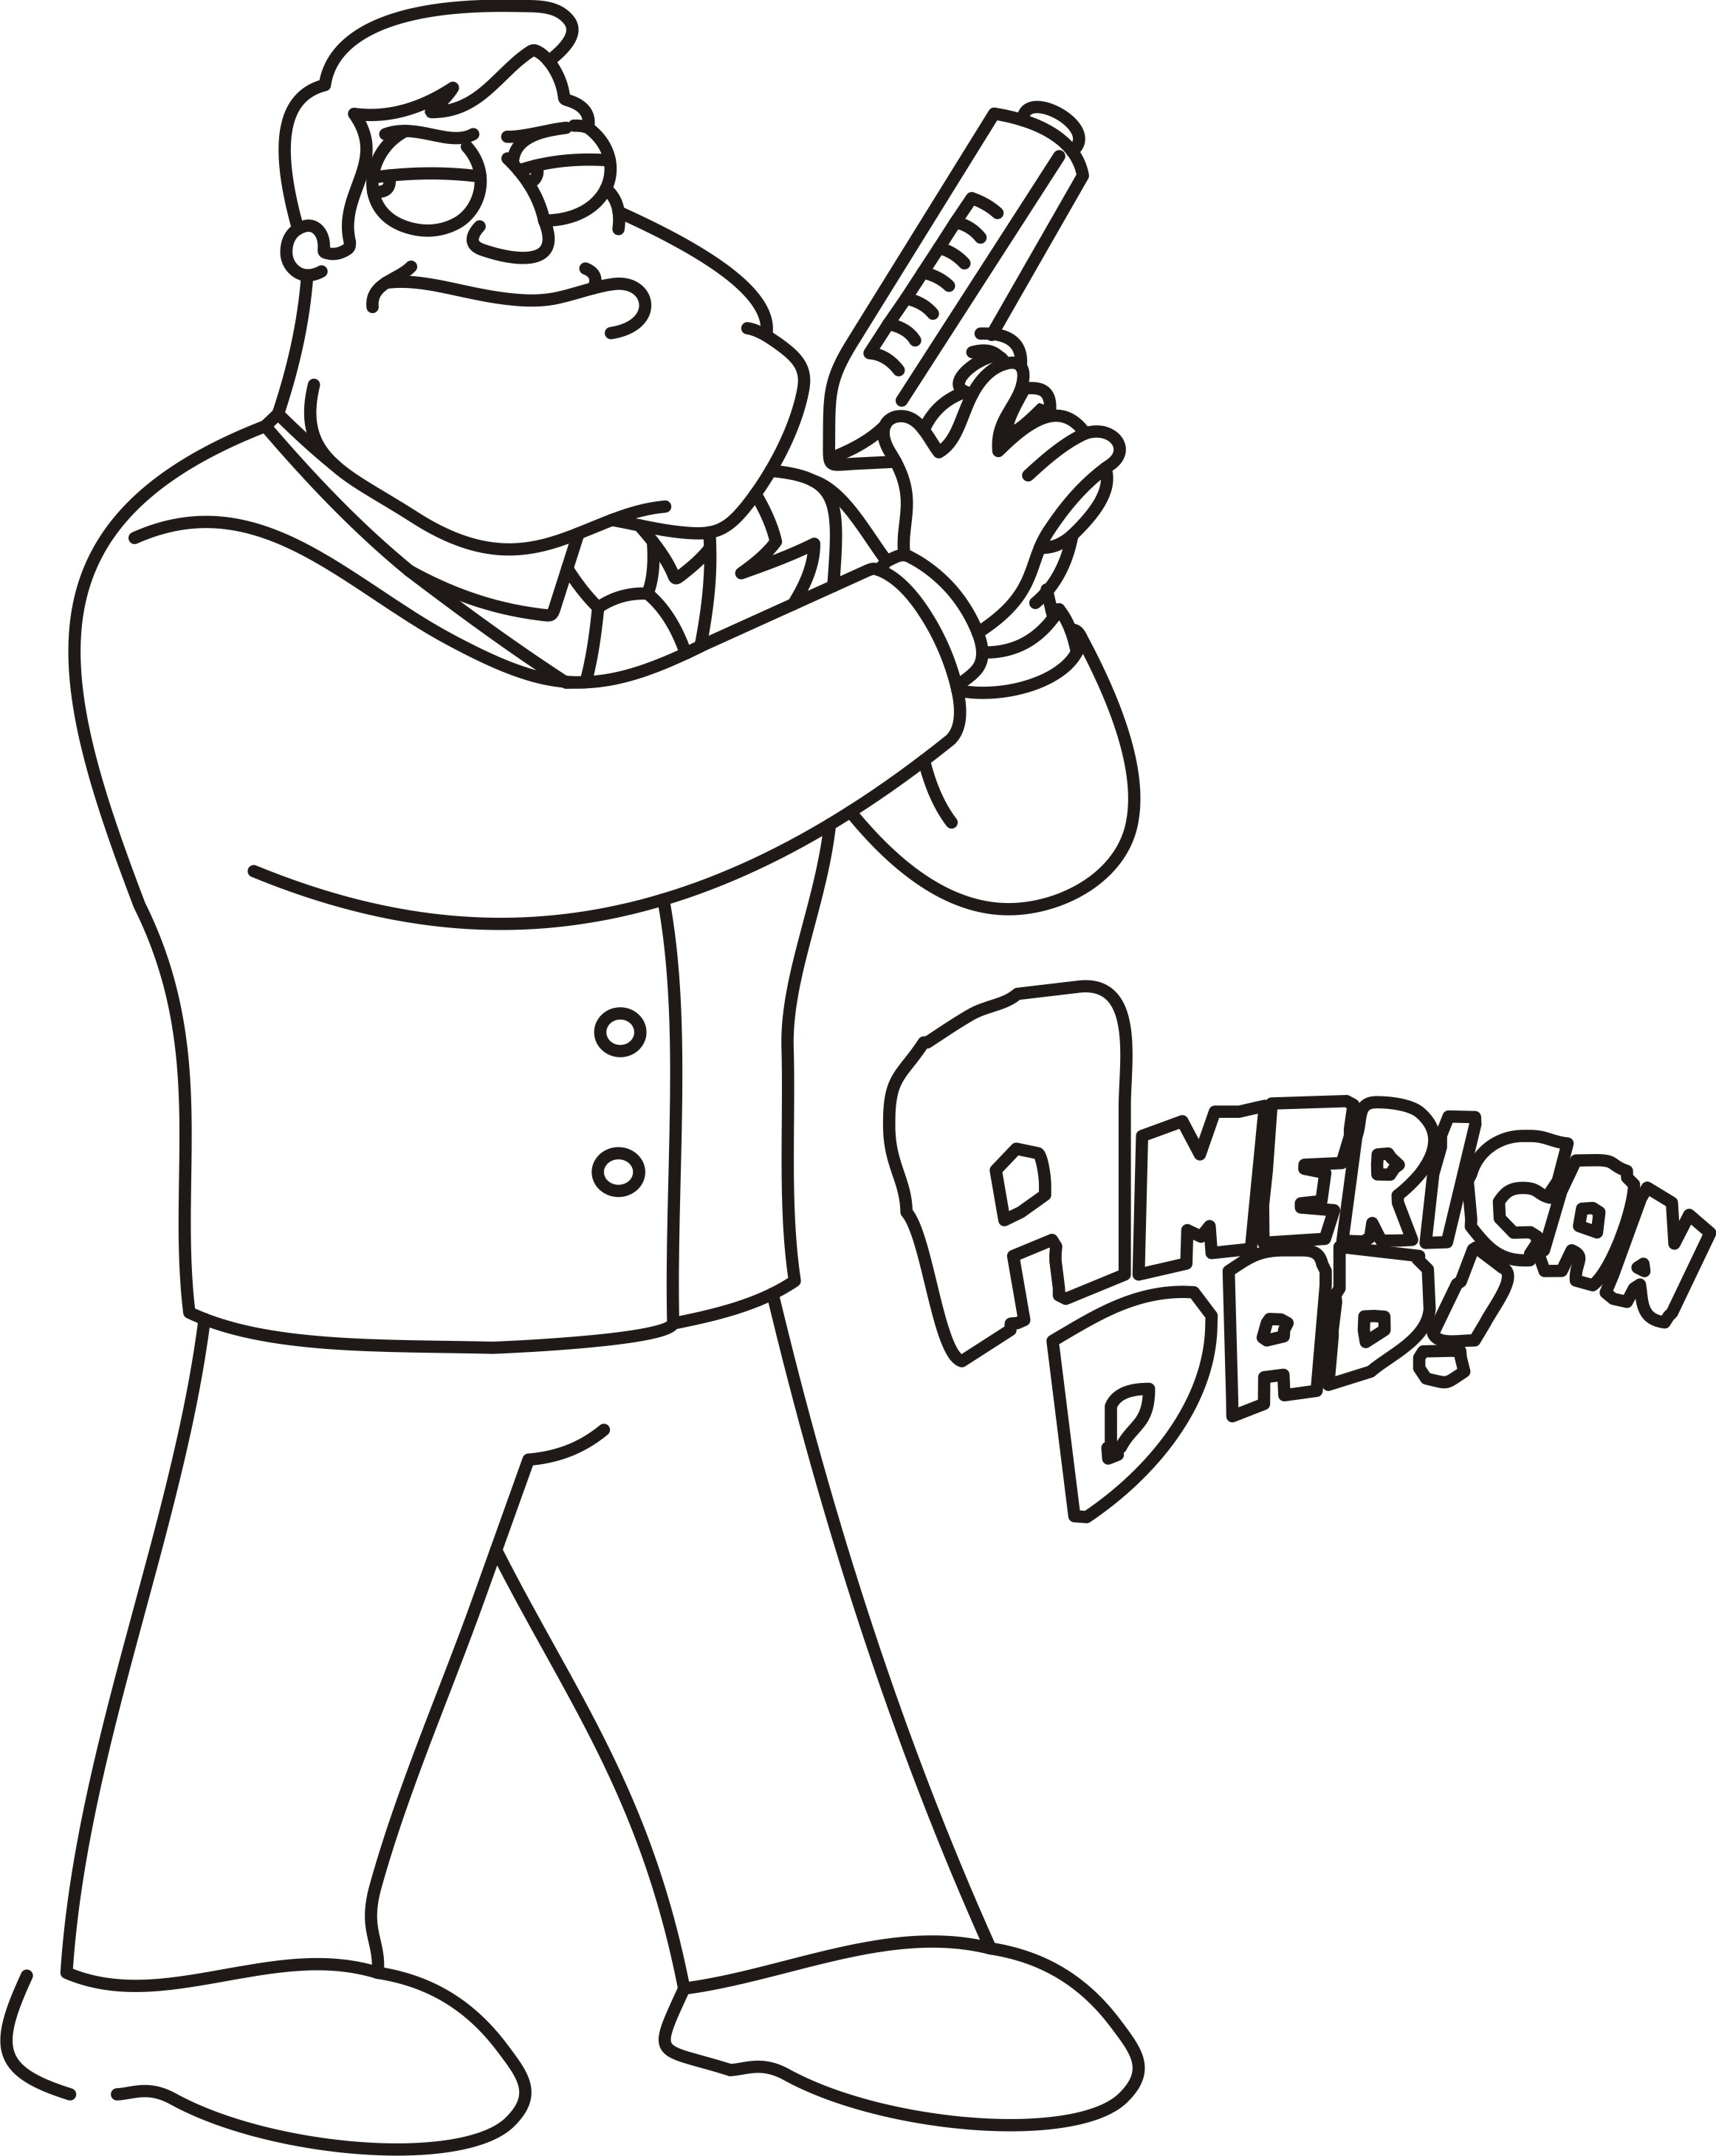 coloring pages of a dad - photo#37